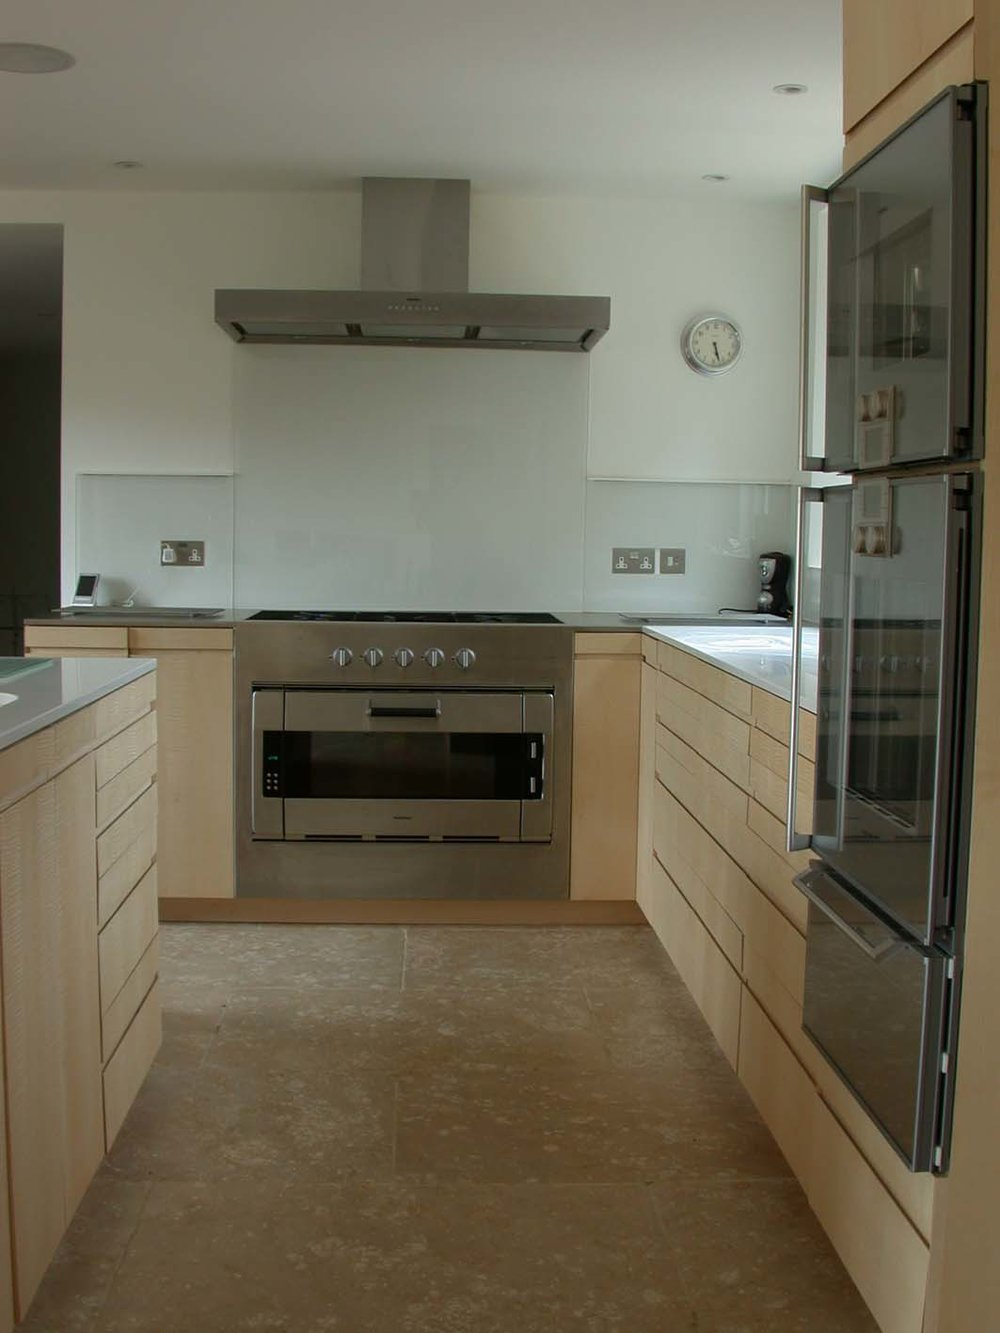 Sycamore kitchen units